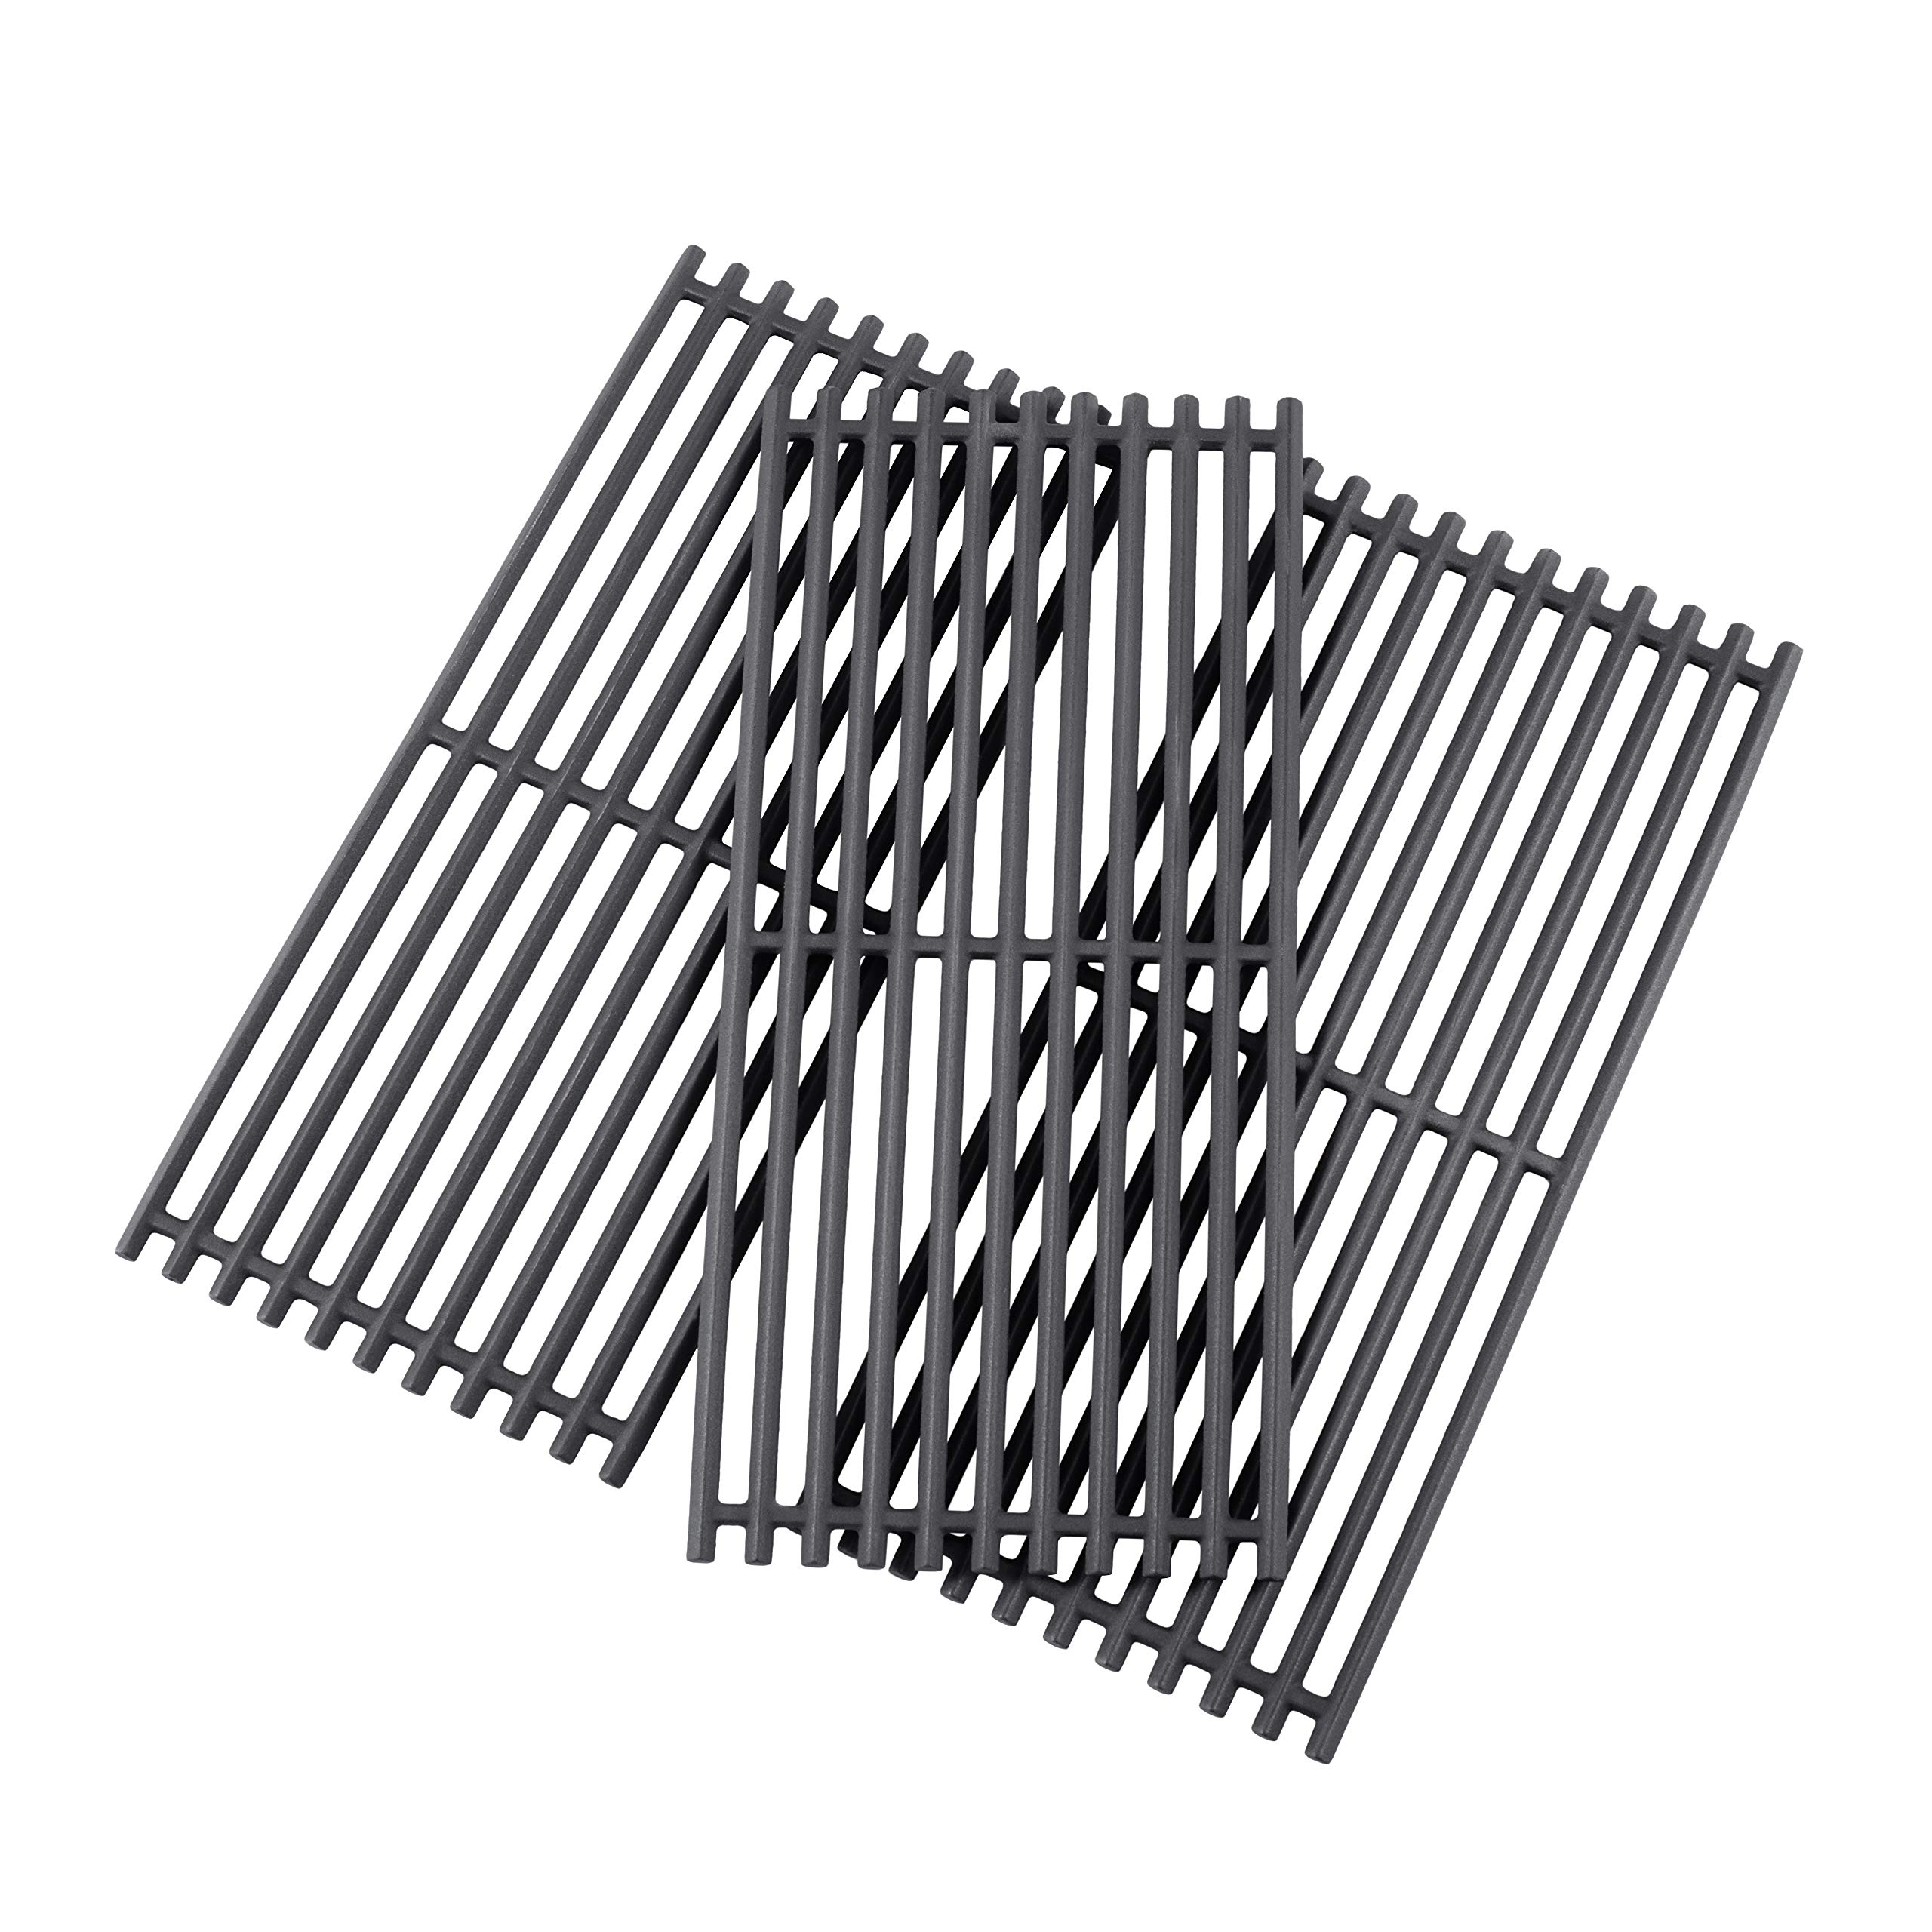 Grill Valueparts Grate for Charbroil Commercial Infrared 3 Burner 463242516, 463242515, 466242515, 466242615, 463243016, 463367516, 463367016, 466242516, 466242616, 463346017, 463246018